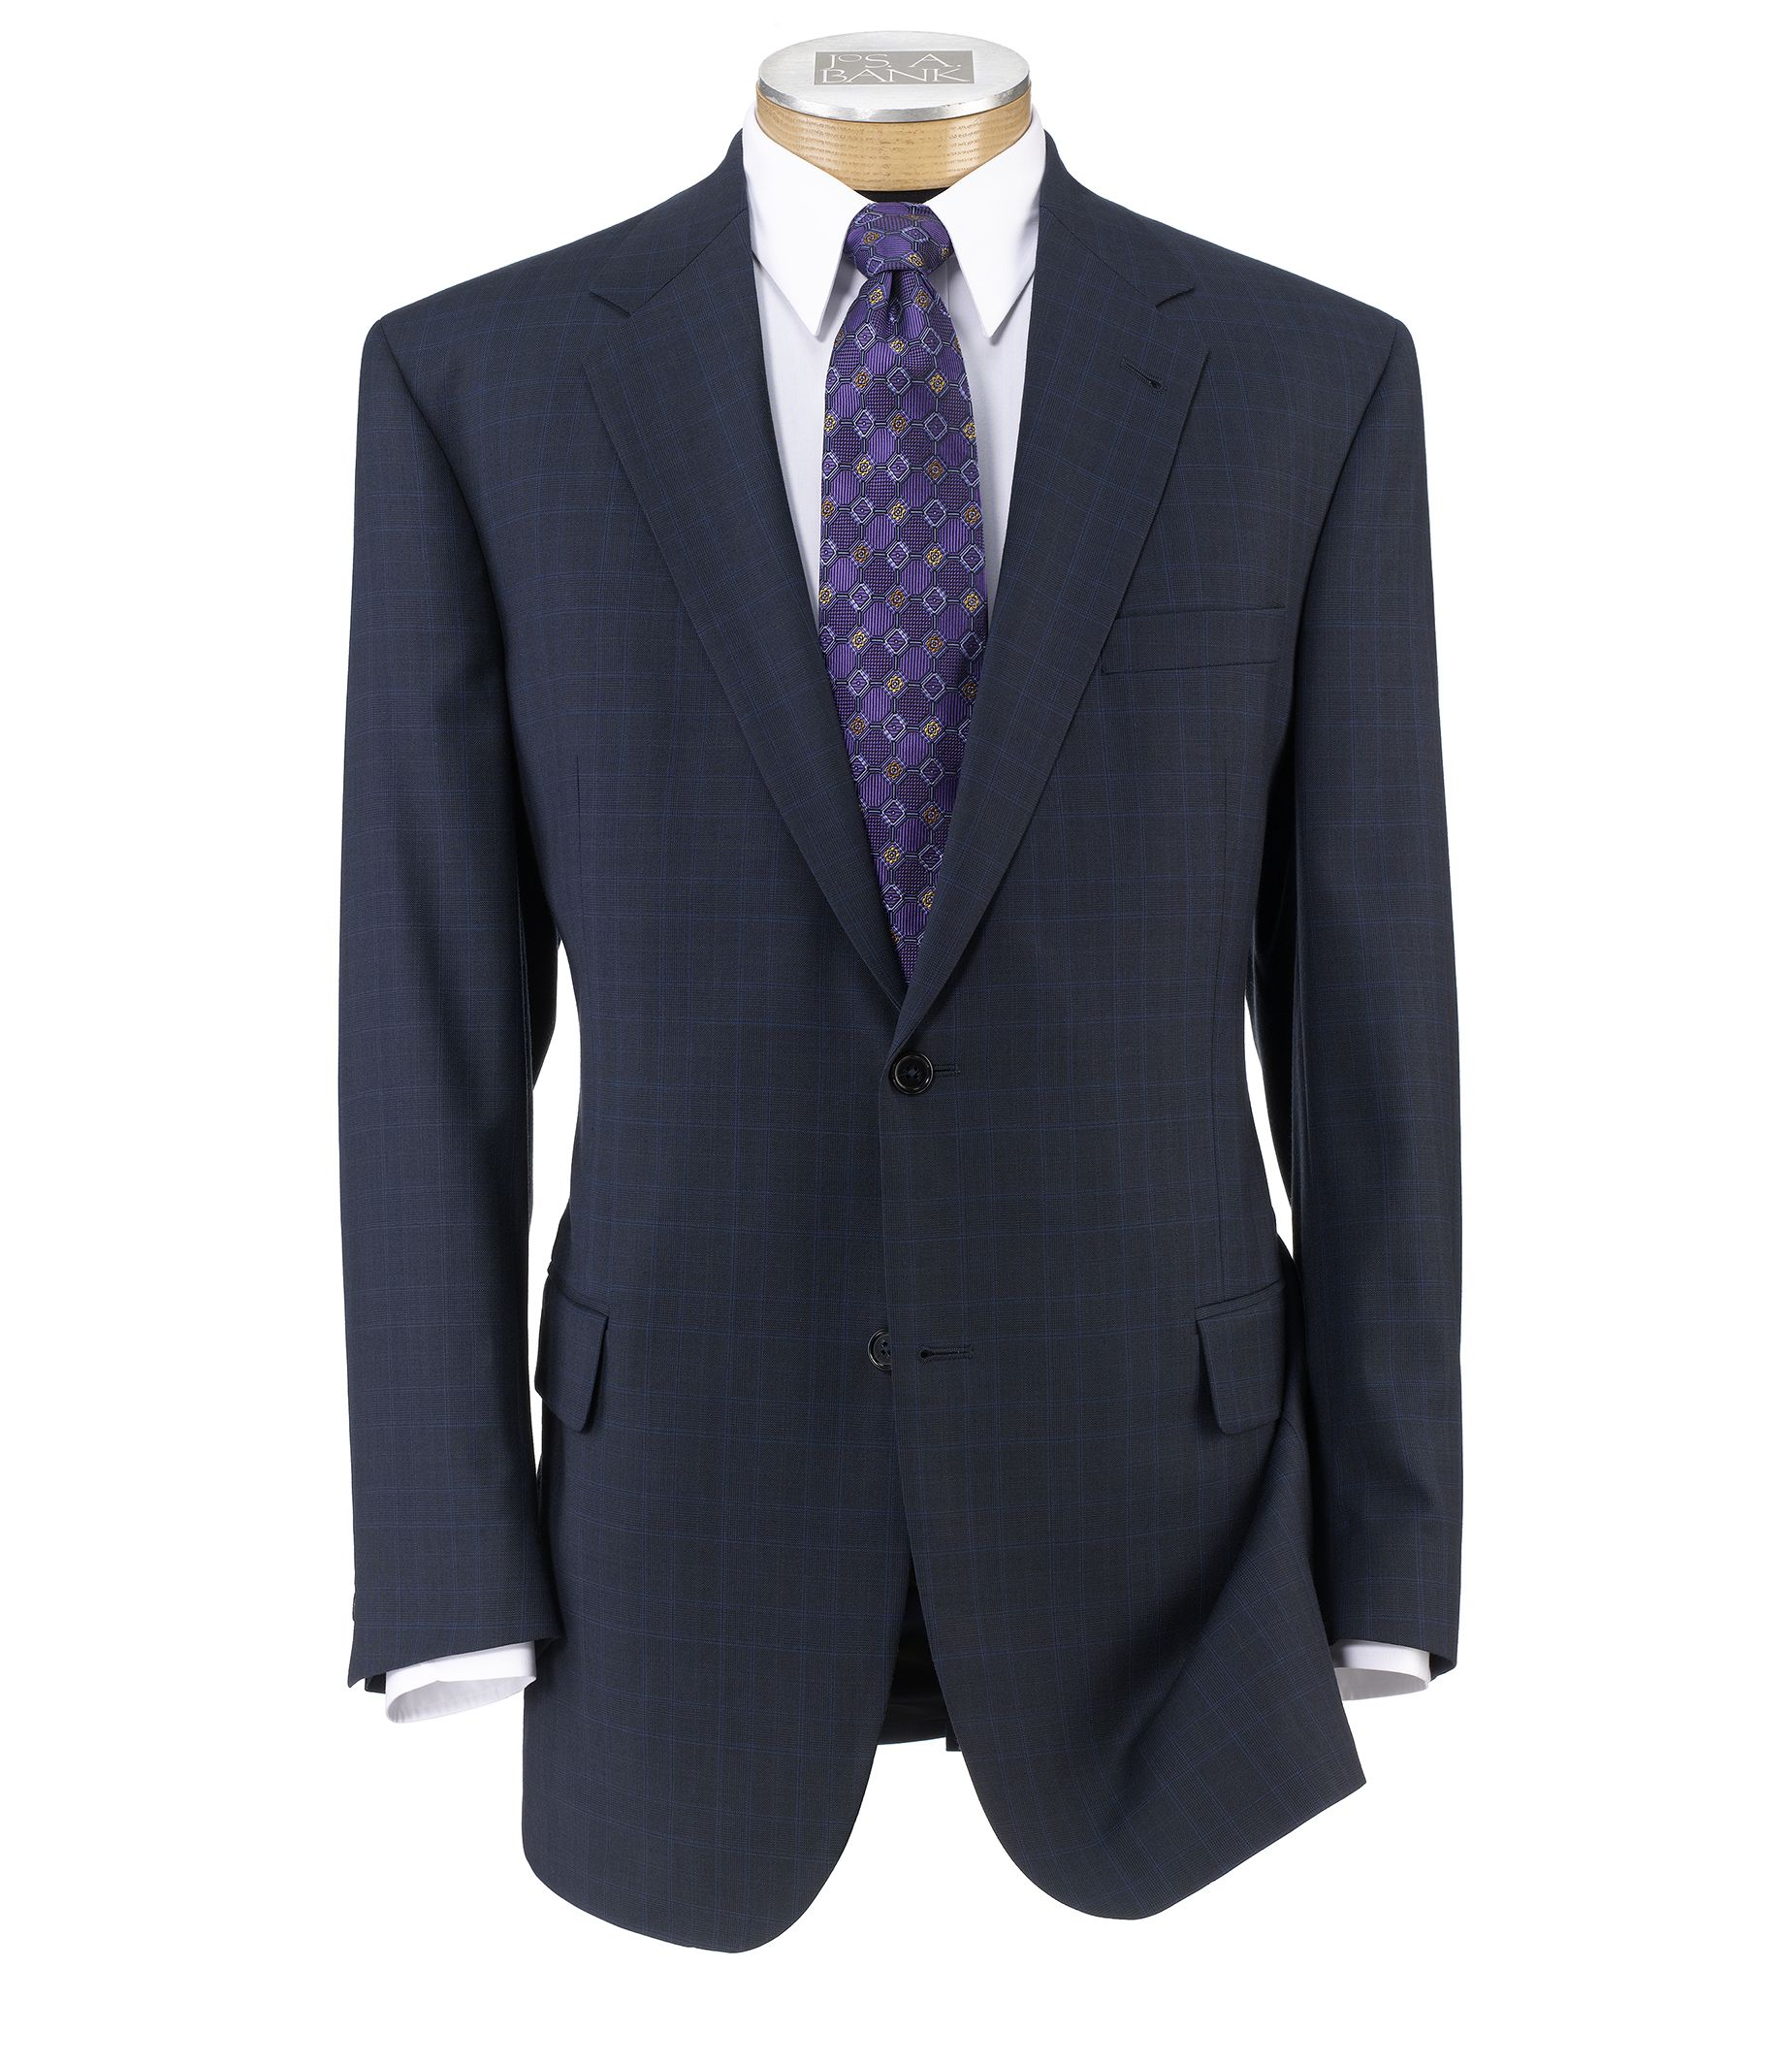 Signature Fashion Suit with Pleated Trousers- Navy Plaid